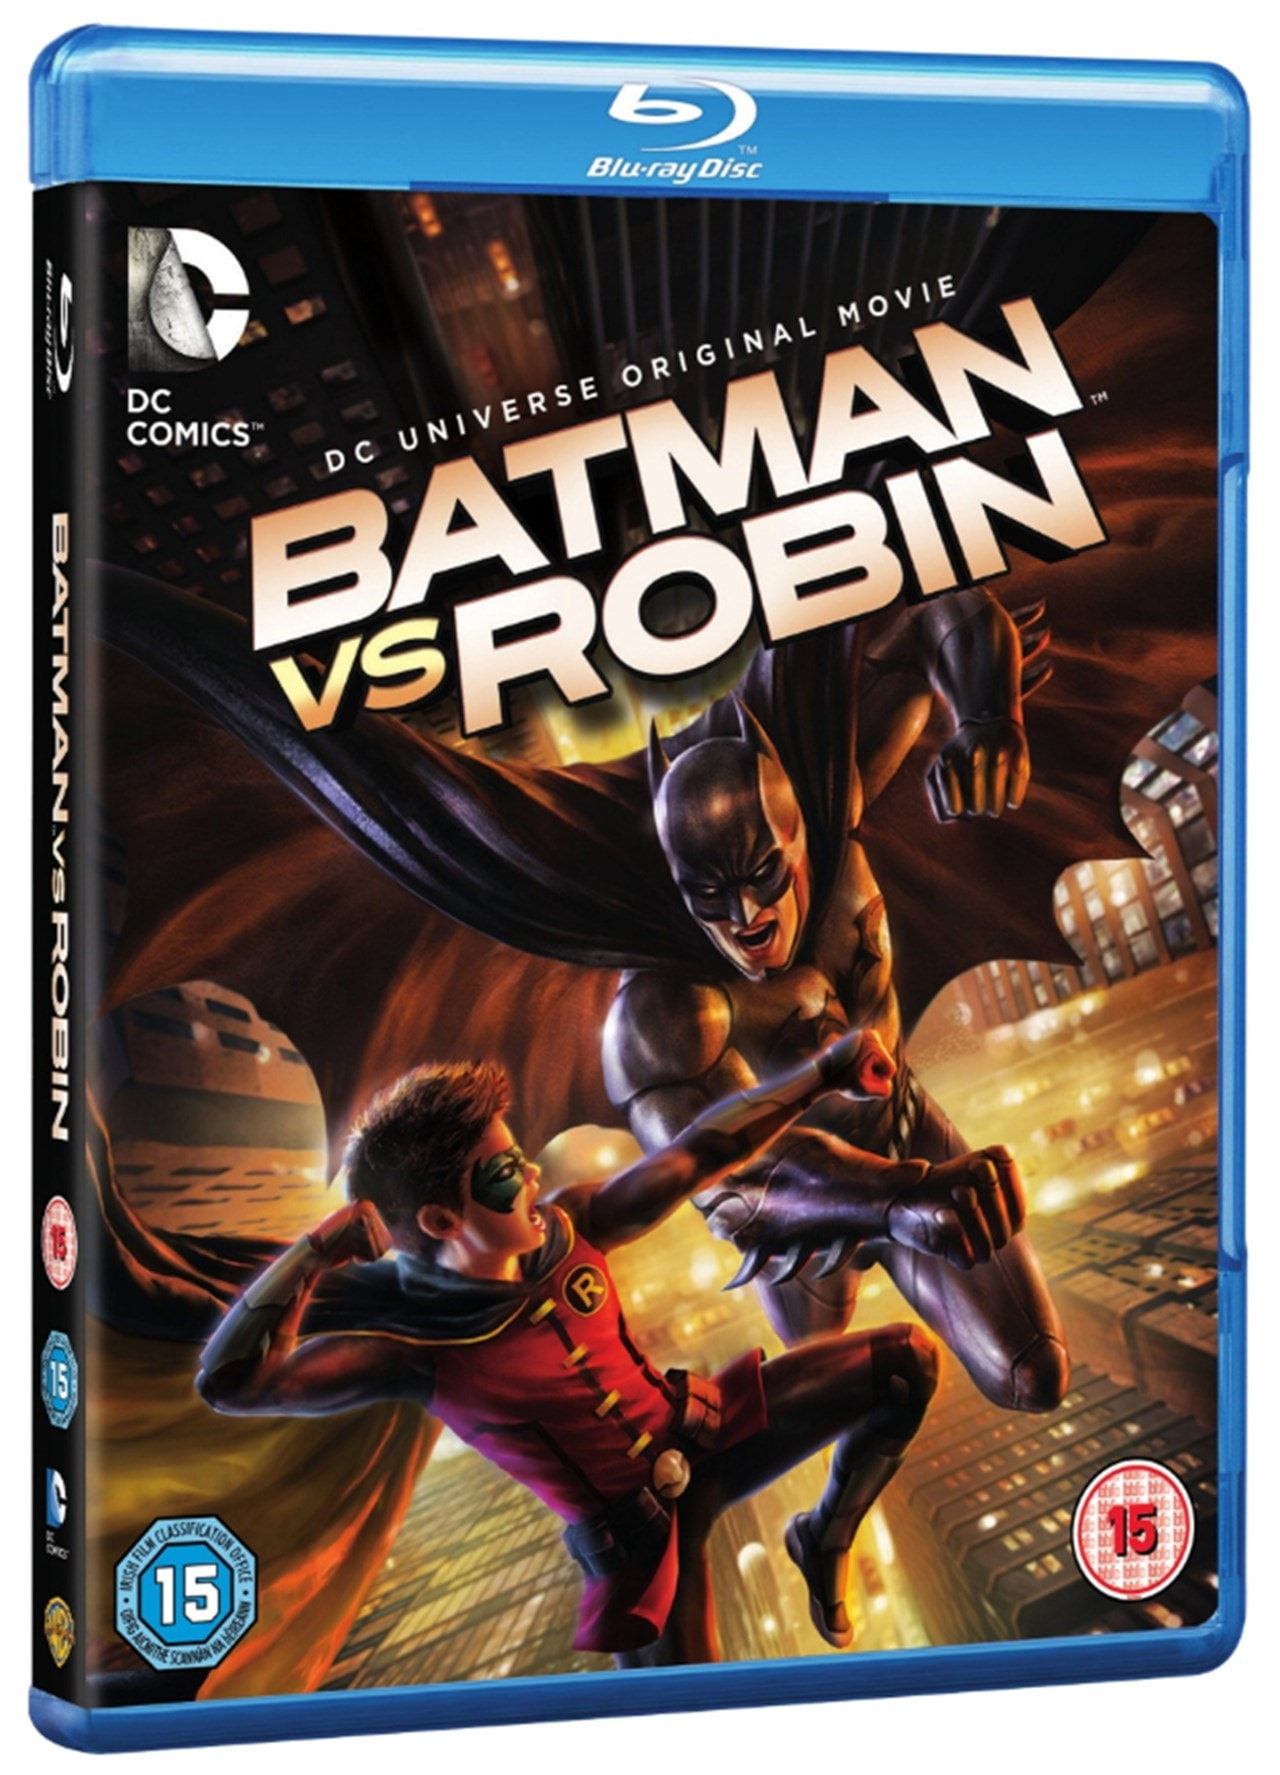 Batman Vs Robin - 2